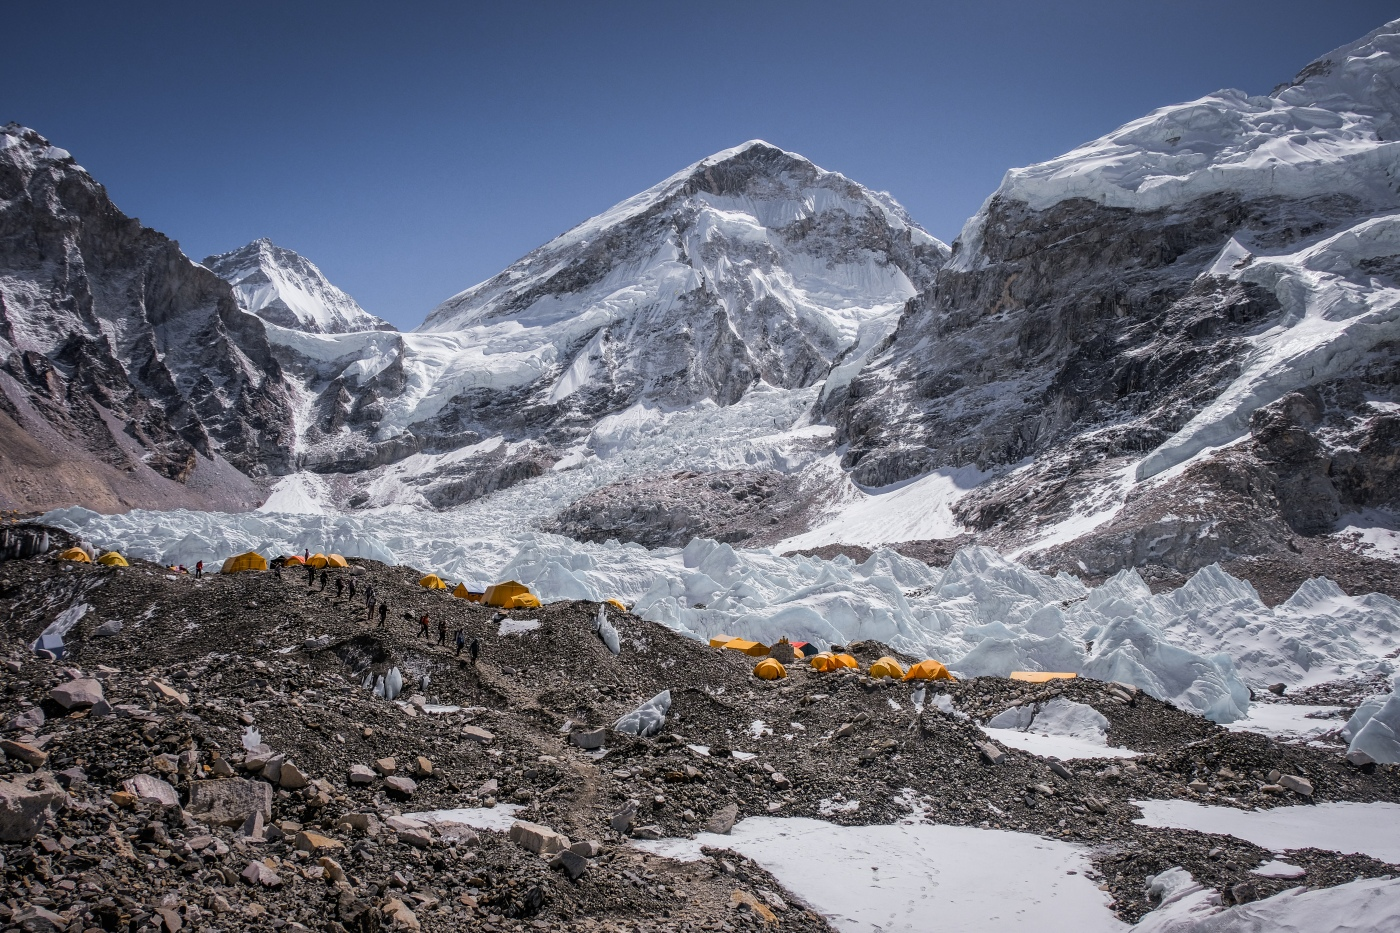 Hiking the Himalayas the Everest Base Camp and Gokyo Lakes route planner